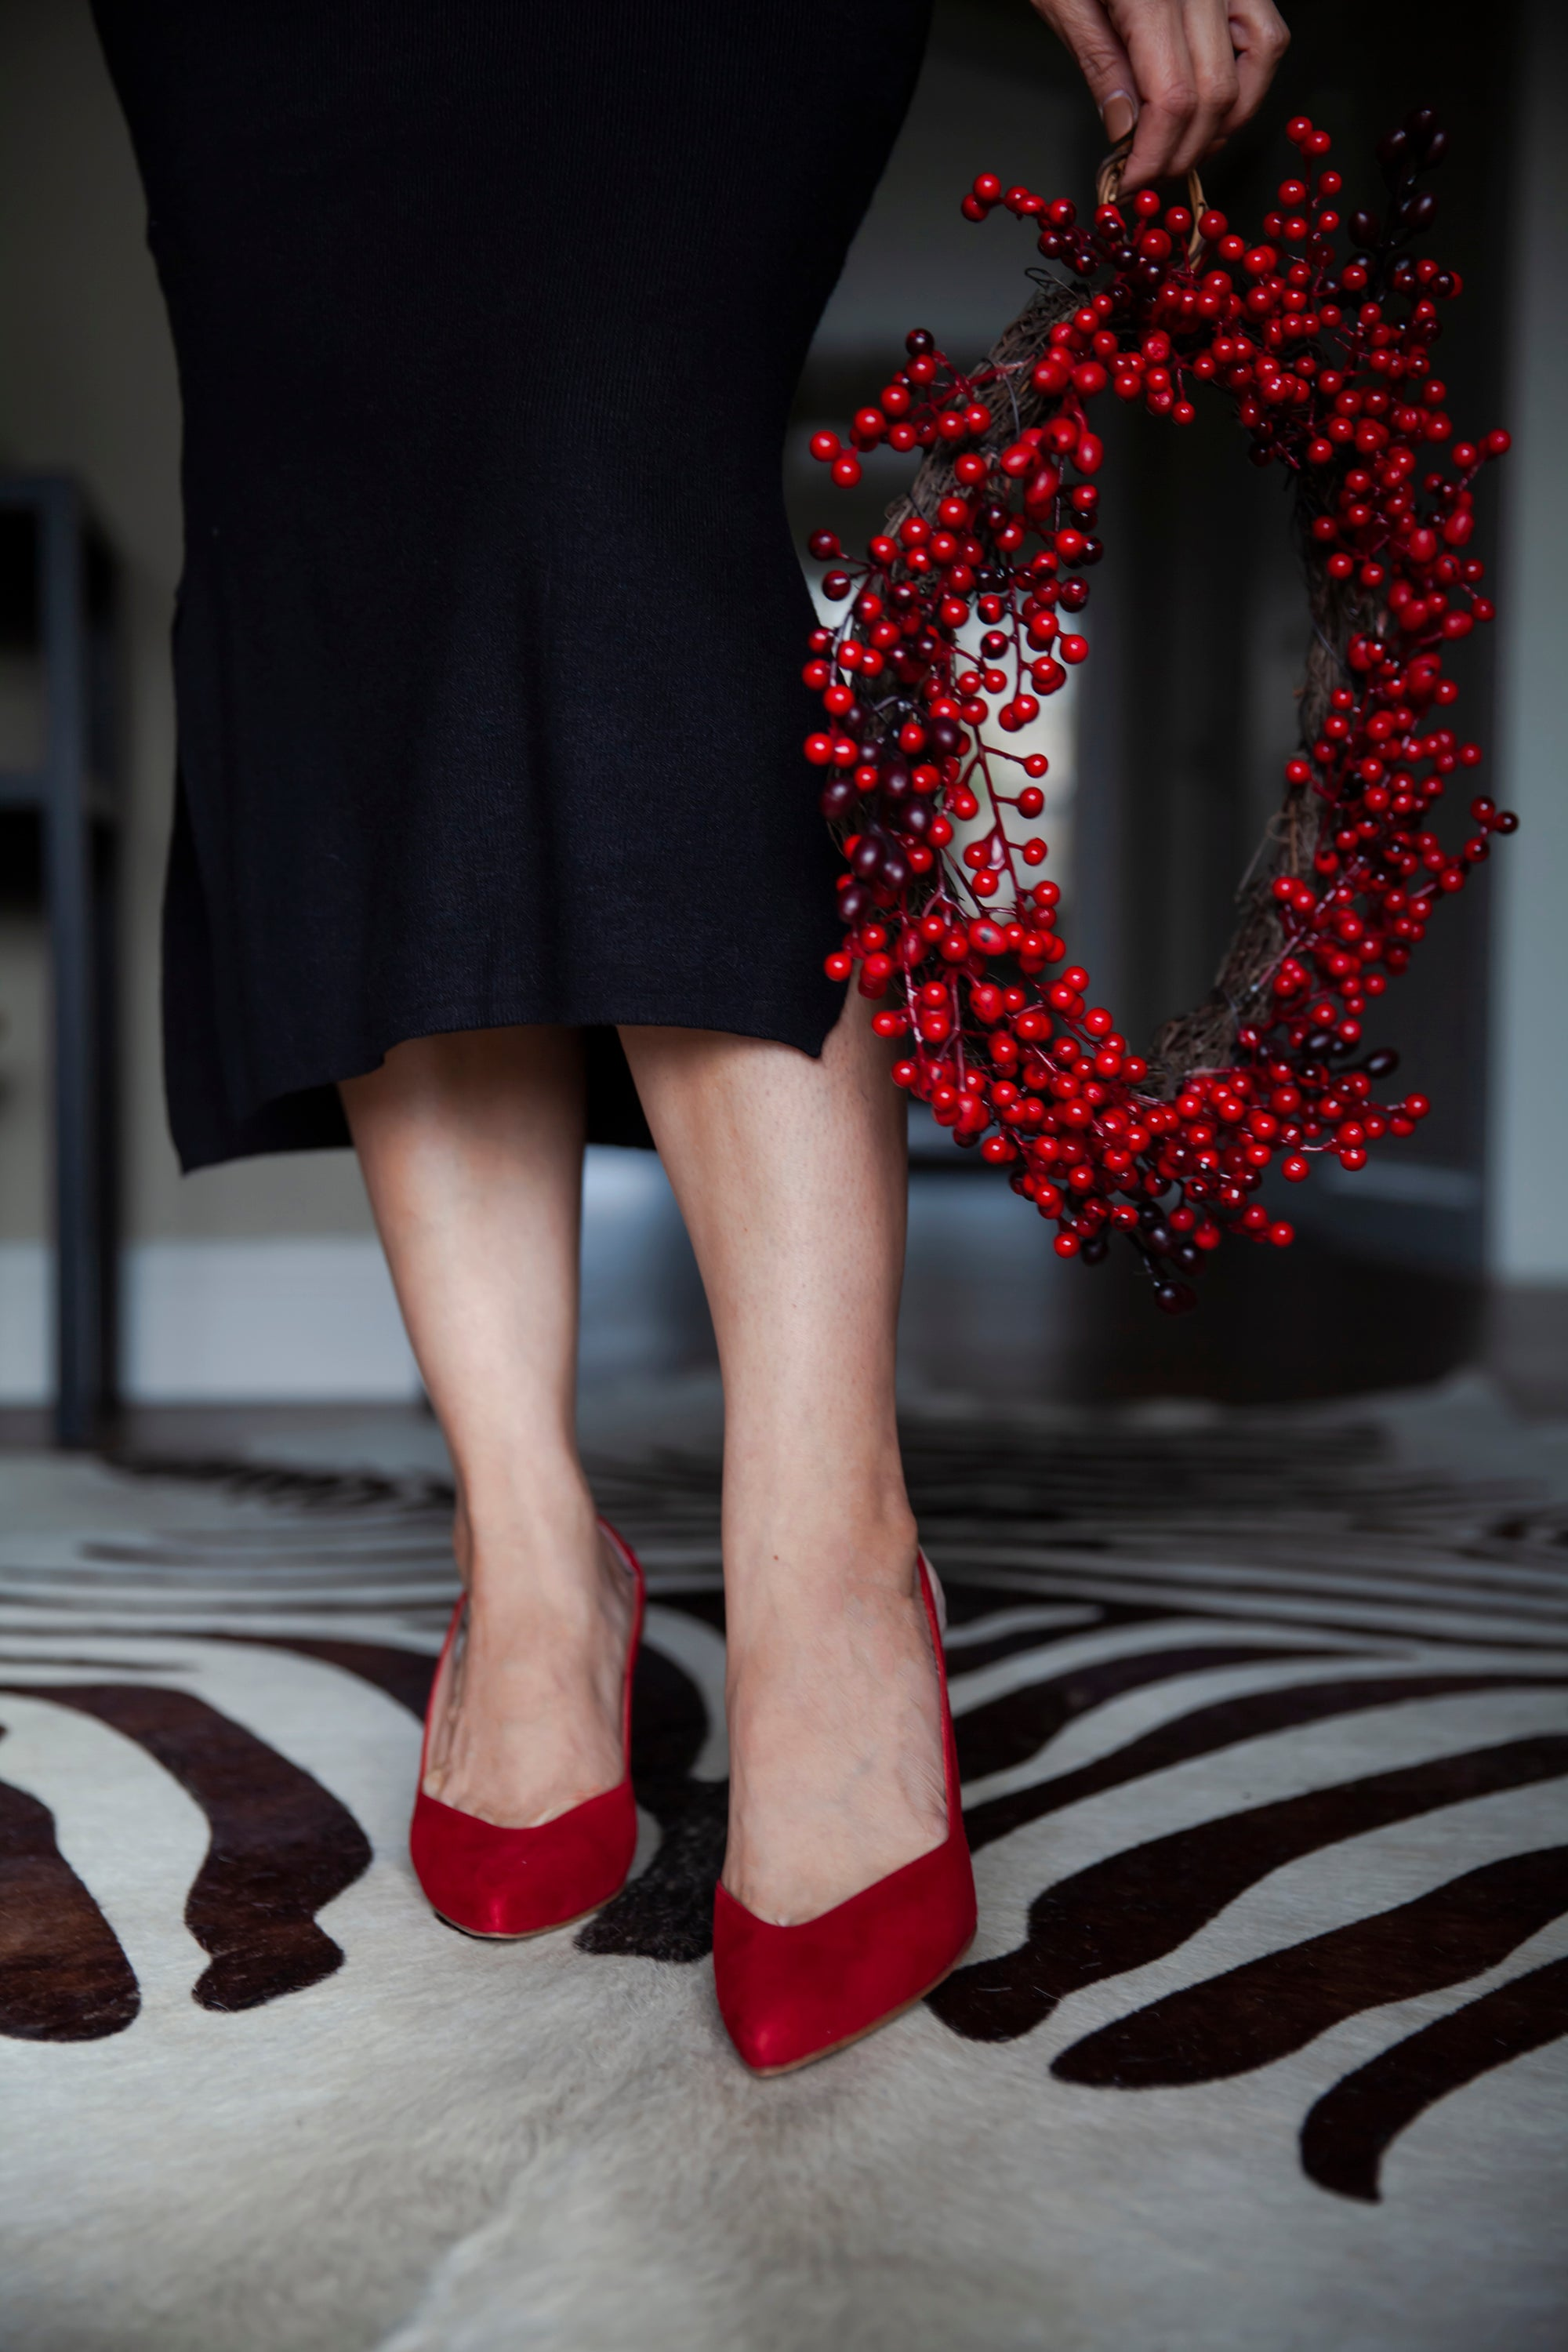 I'm in love with Inez and their incredible collection of heels. The Mia's bright red and the silky suede make a true statement!